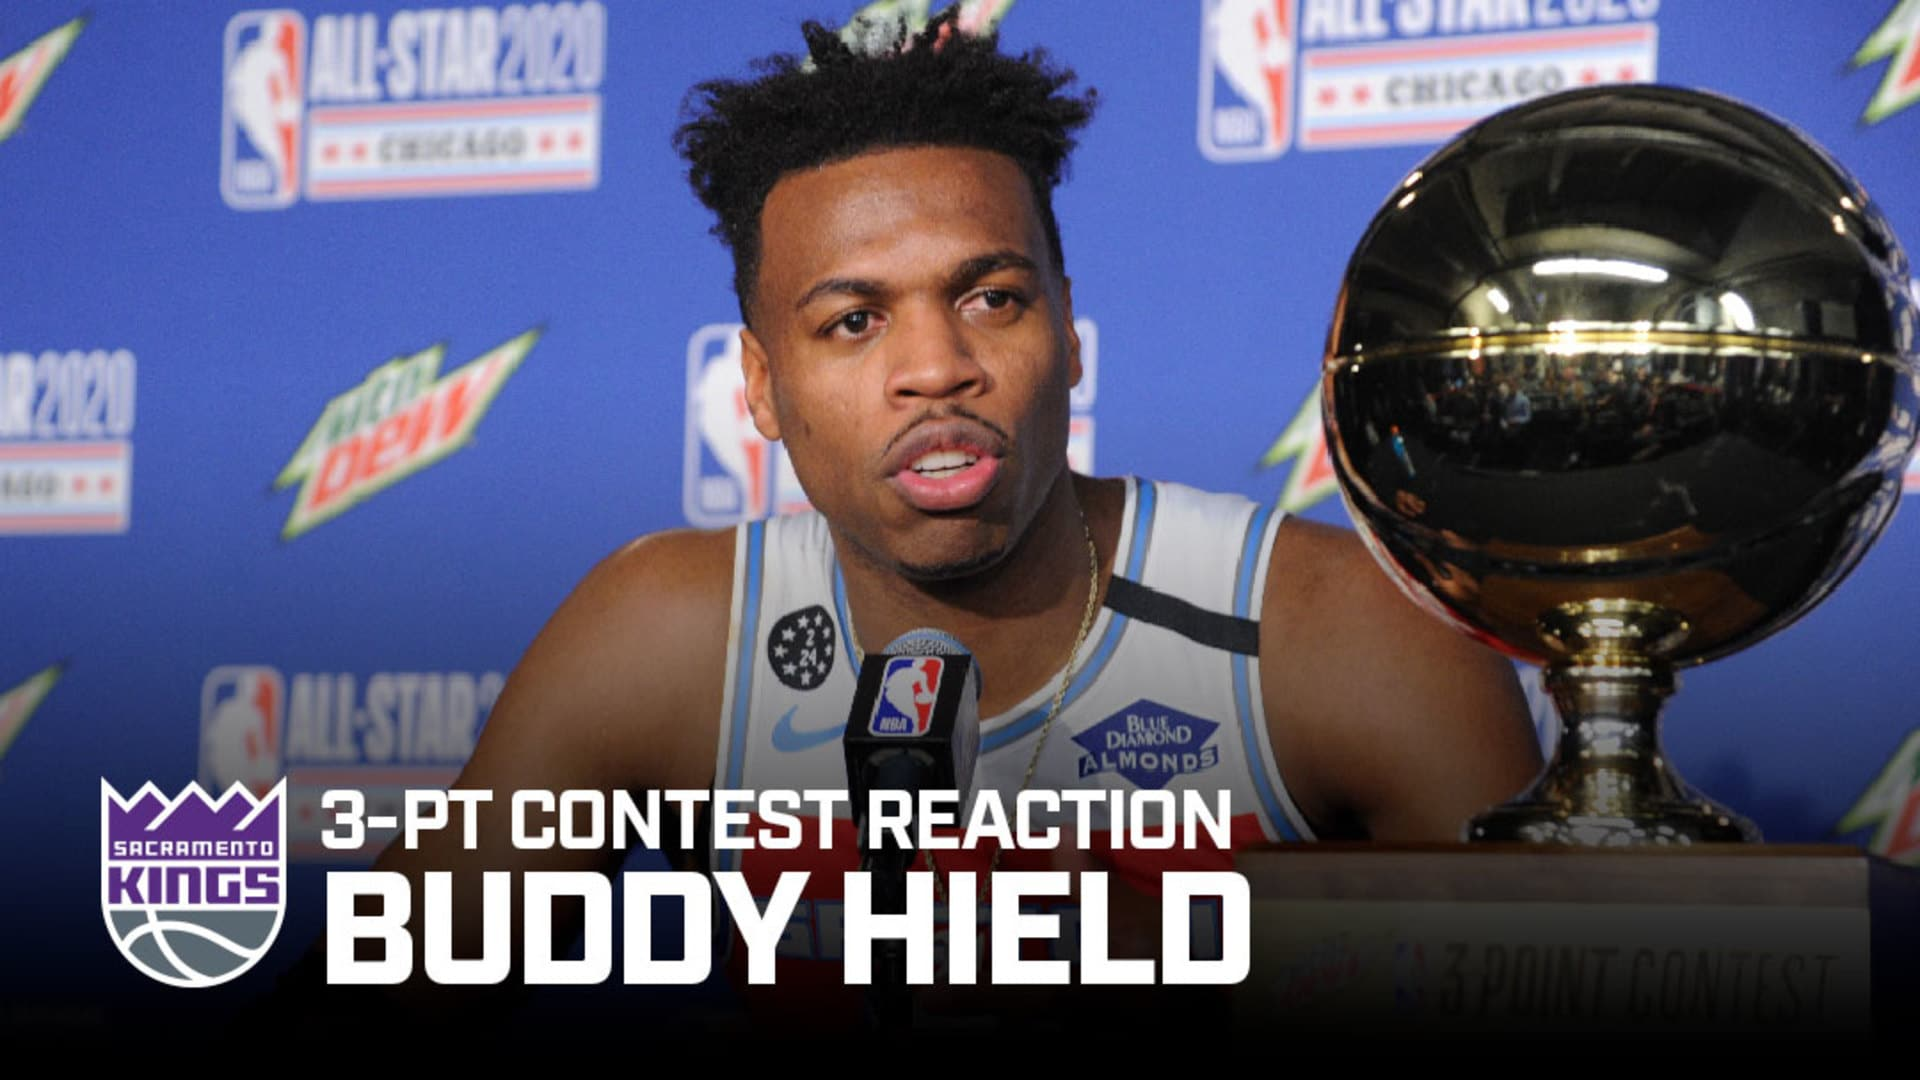 'As a Shooter, This is on Your Bucket List' | Buddy Hield 3-PT Contest Reaction